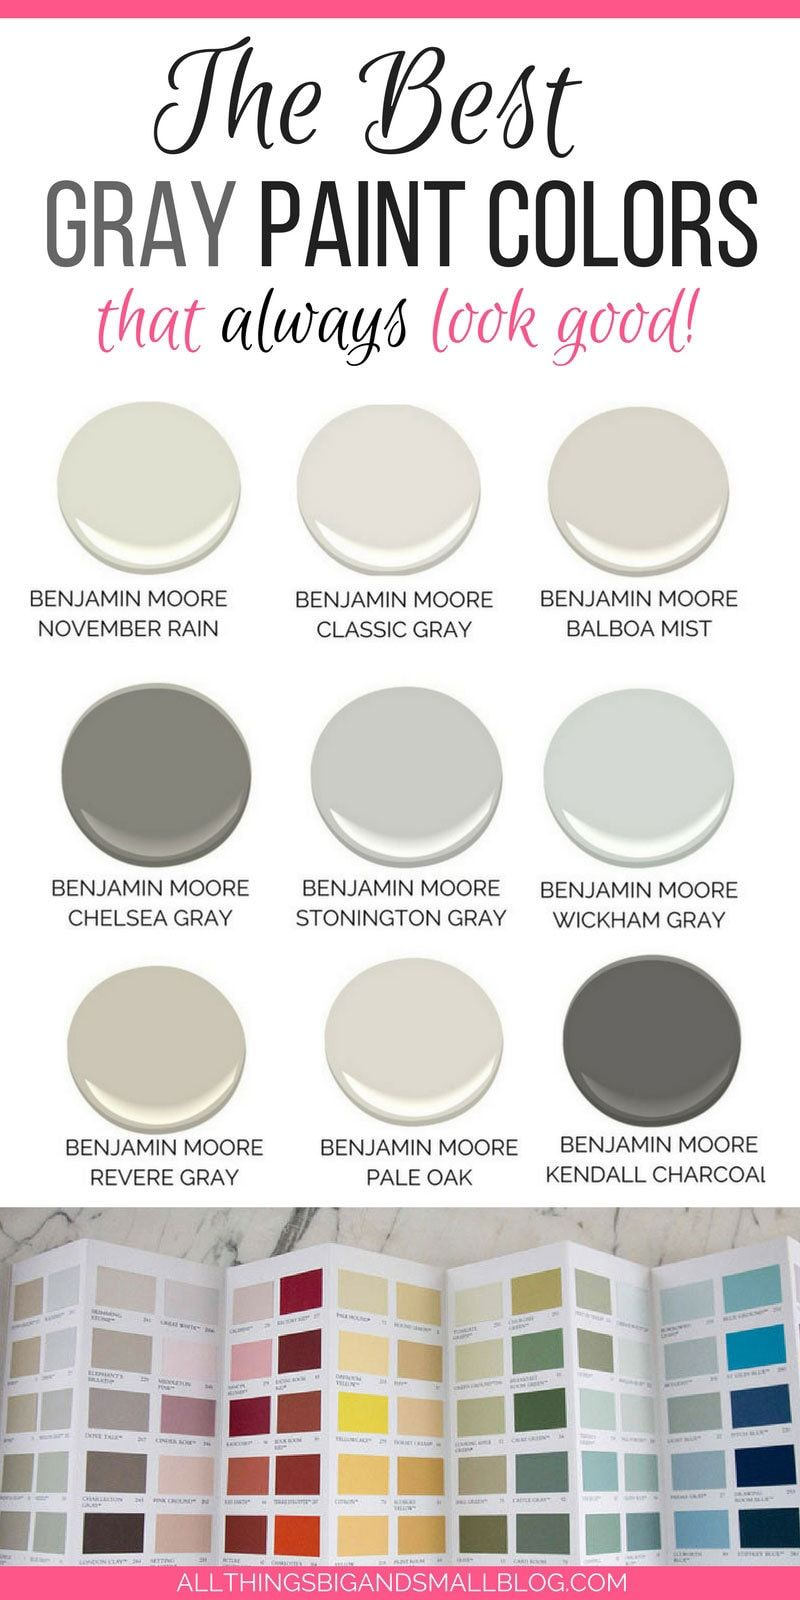 the best gray paint colors never fail gray paints march on most popular wall paint colors id=48469